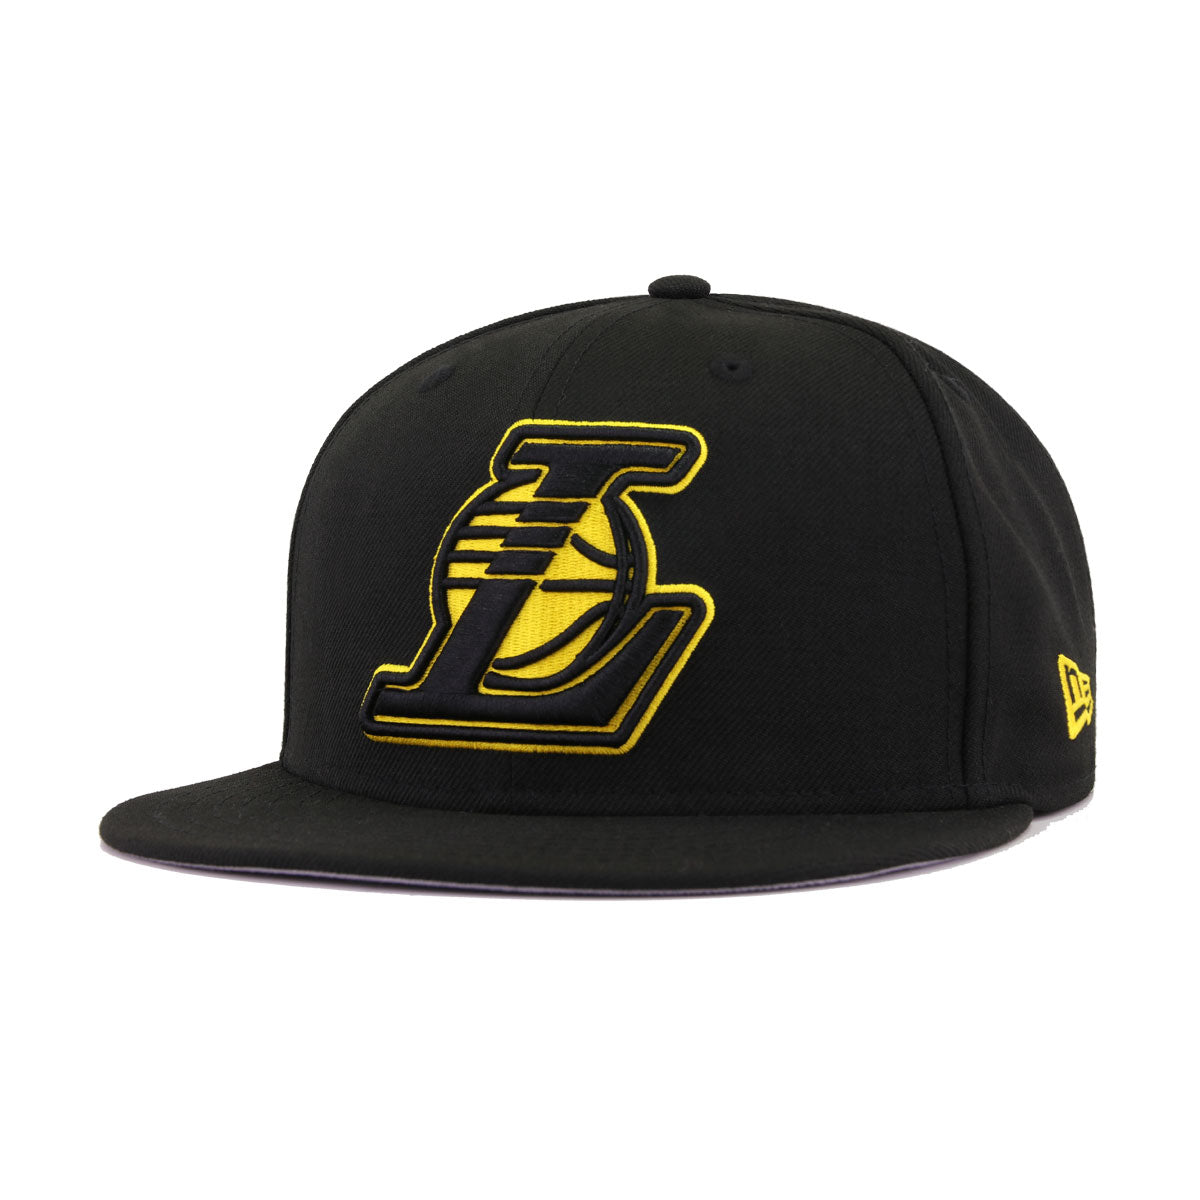 Los Angeles Lakers Black Alternate New Era 9Fifty Snapback